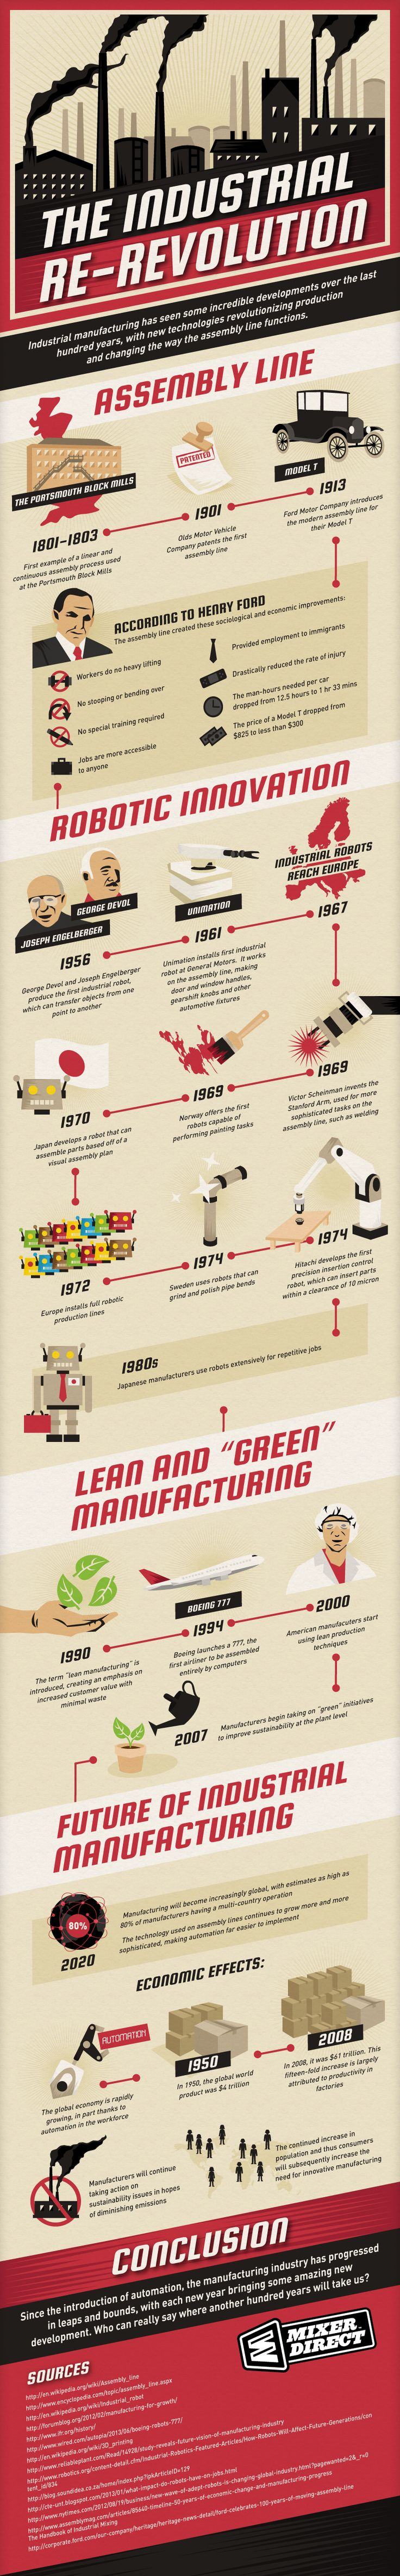 best ideas about industrial revolution history industrial re revolution infographic